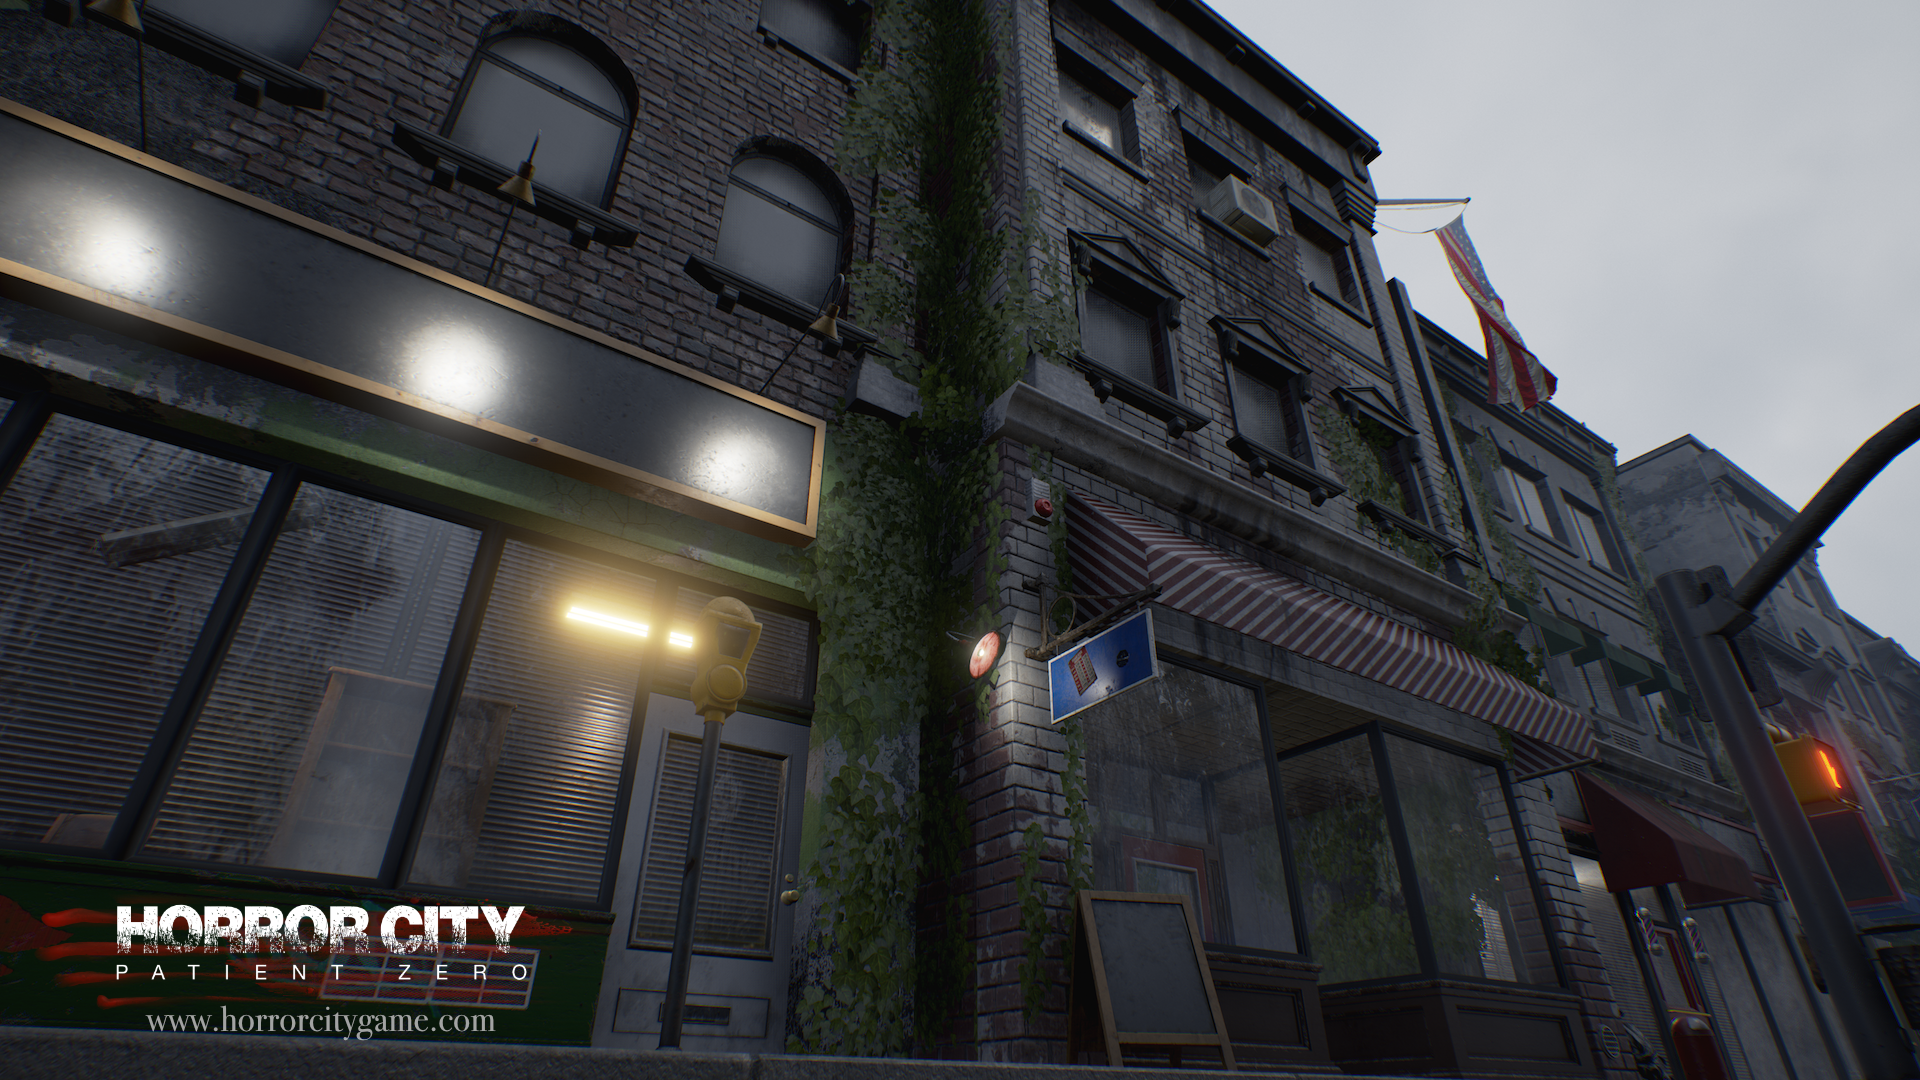 Check out the building in the center, it renders the new brick textures, which has been done with substance designer.